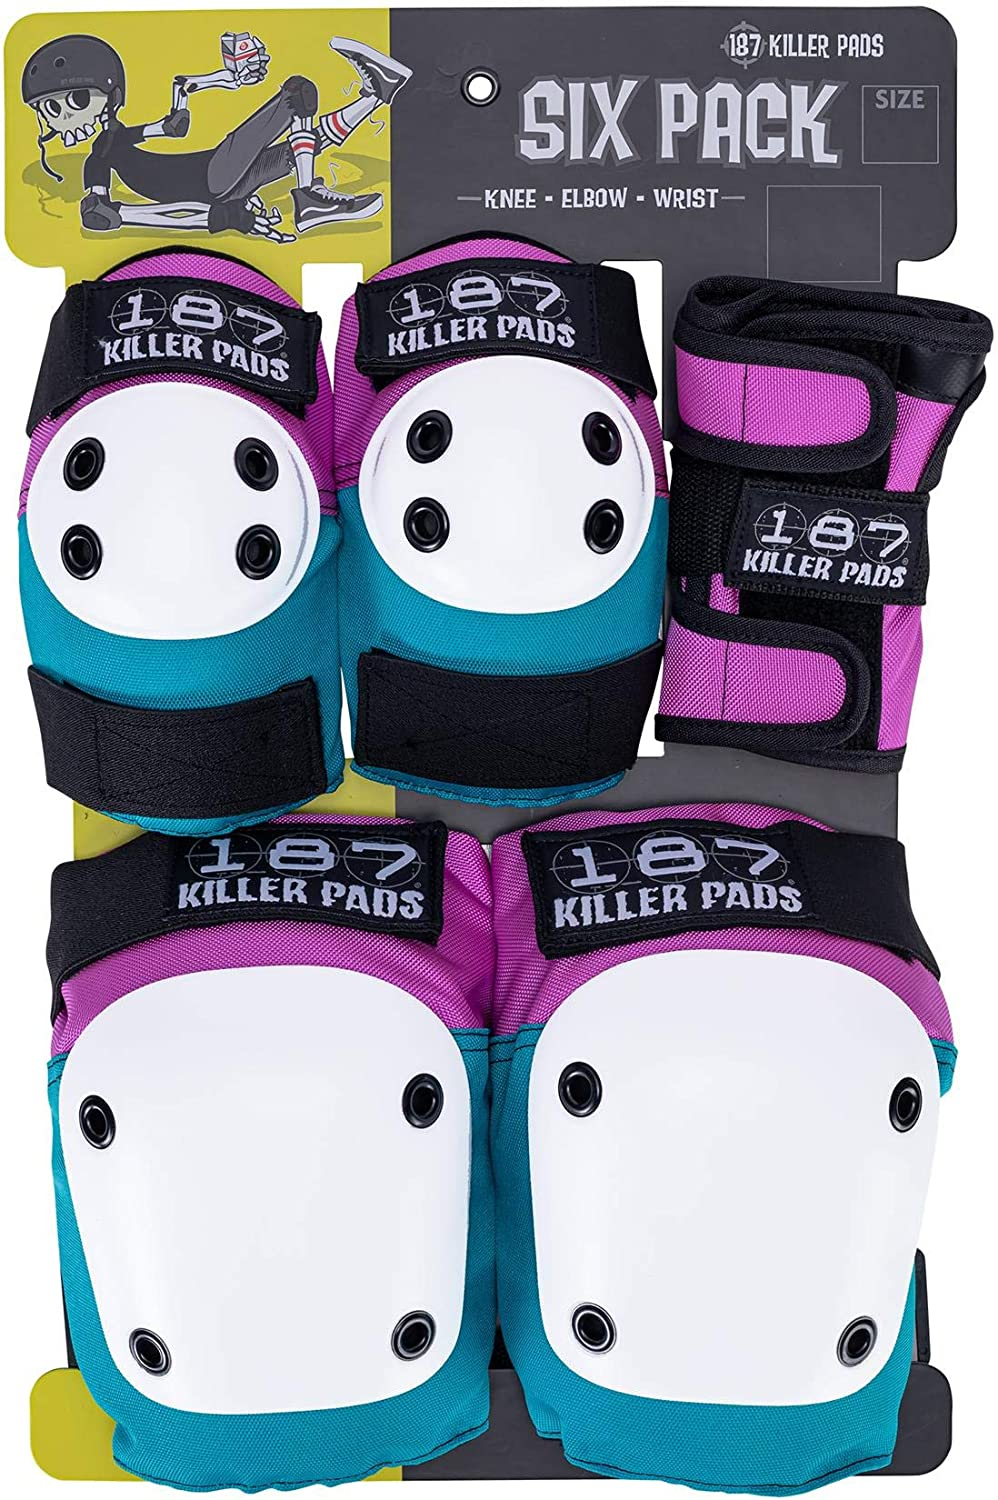 Elbow Pads 187 Killer Pads Skateboarding Knee Pads Six Pack Pad Set and Wrist Guards